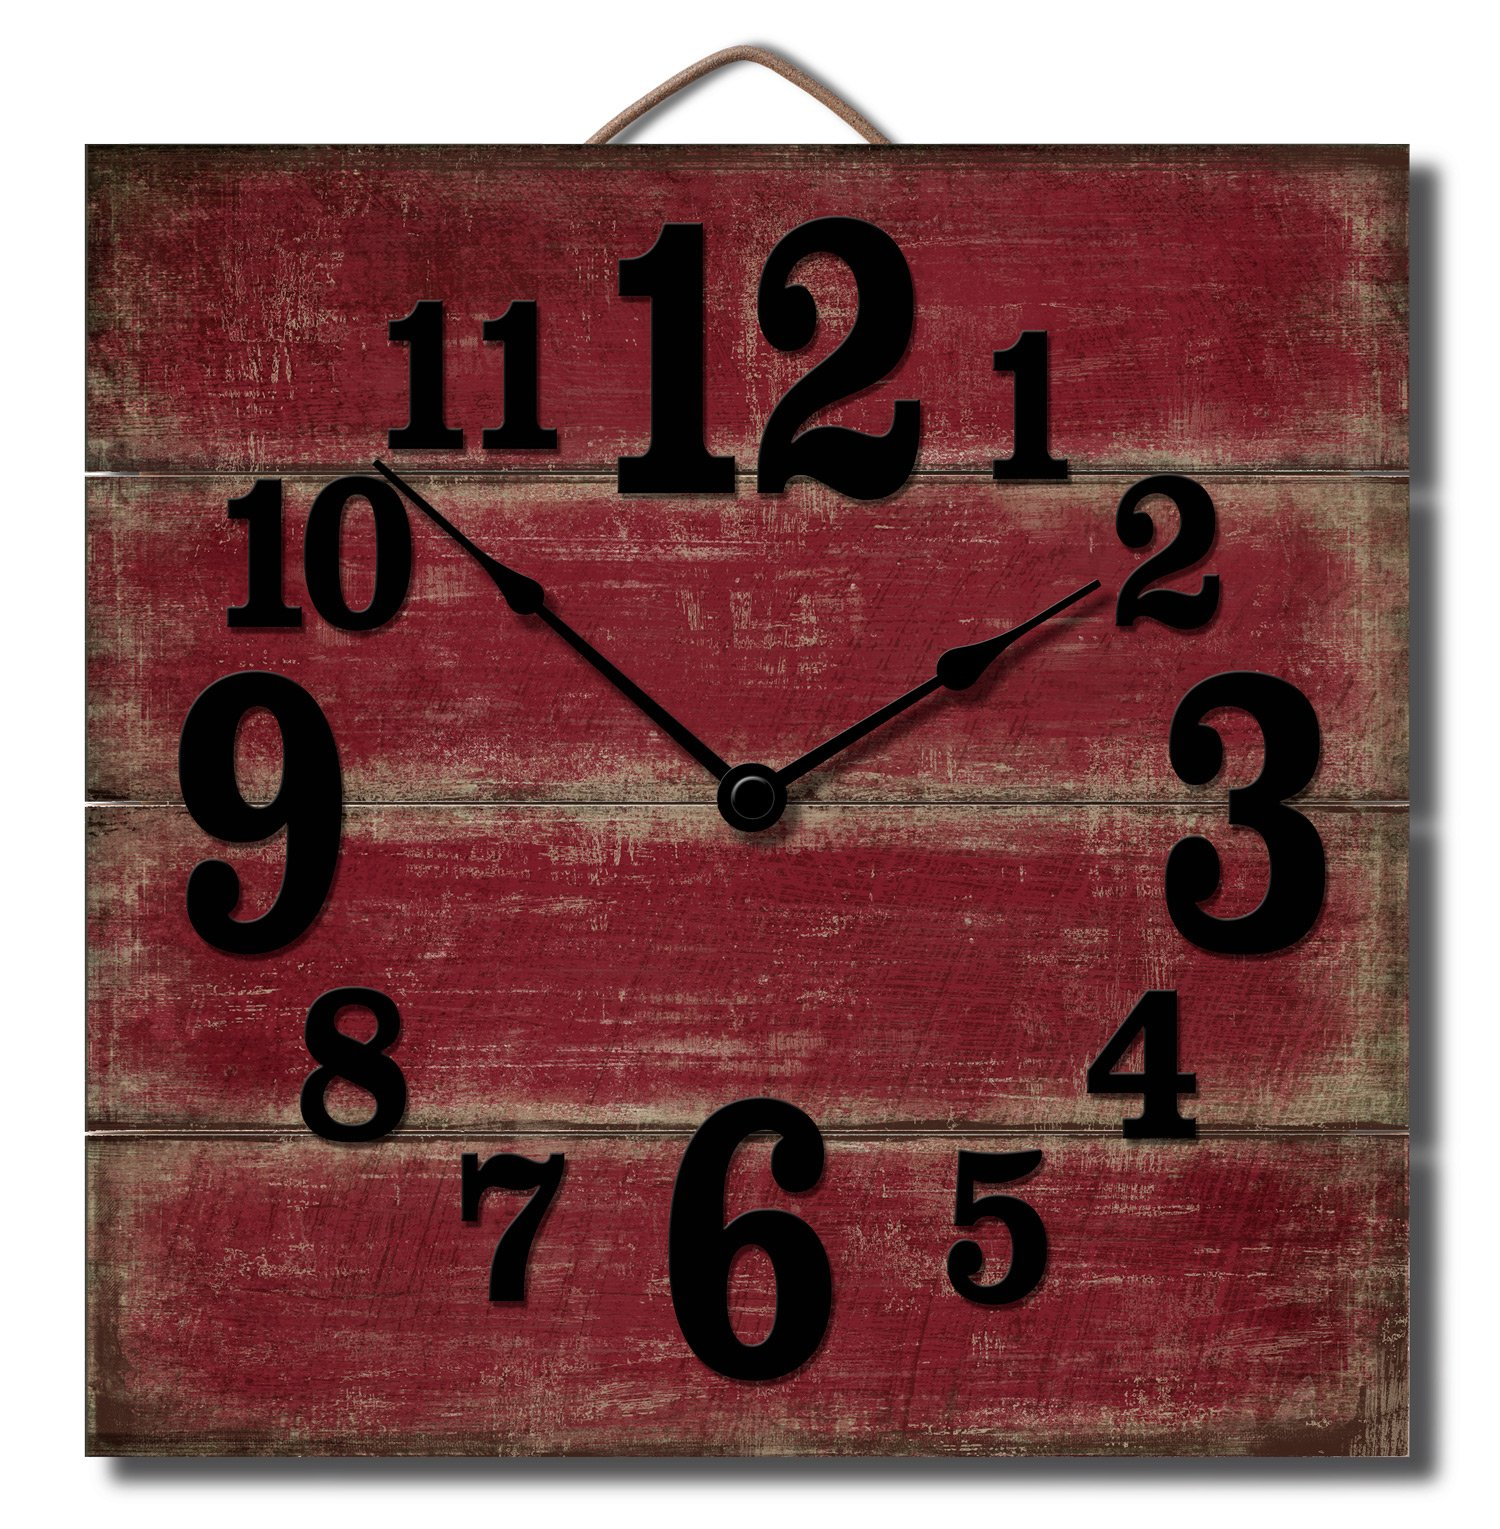 Highland Graphics 12'' Rustic Red Wall Clock Made in USA from Reclaimed Wood Slats